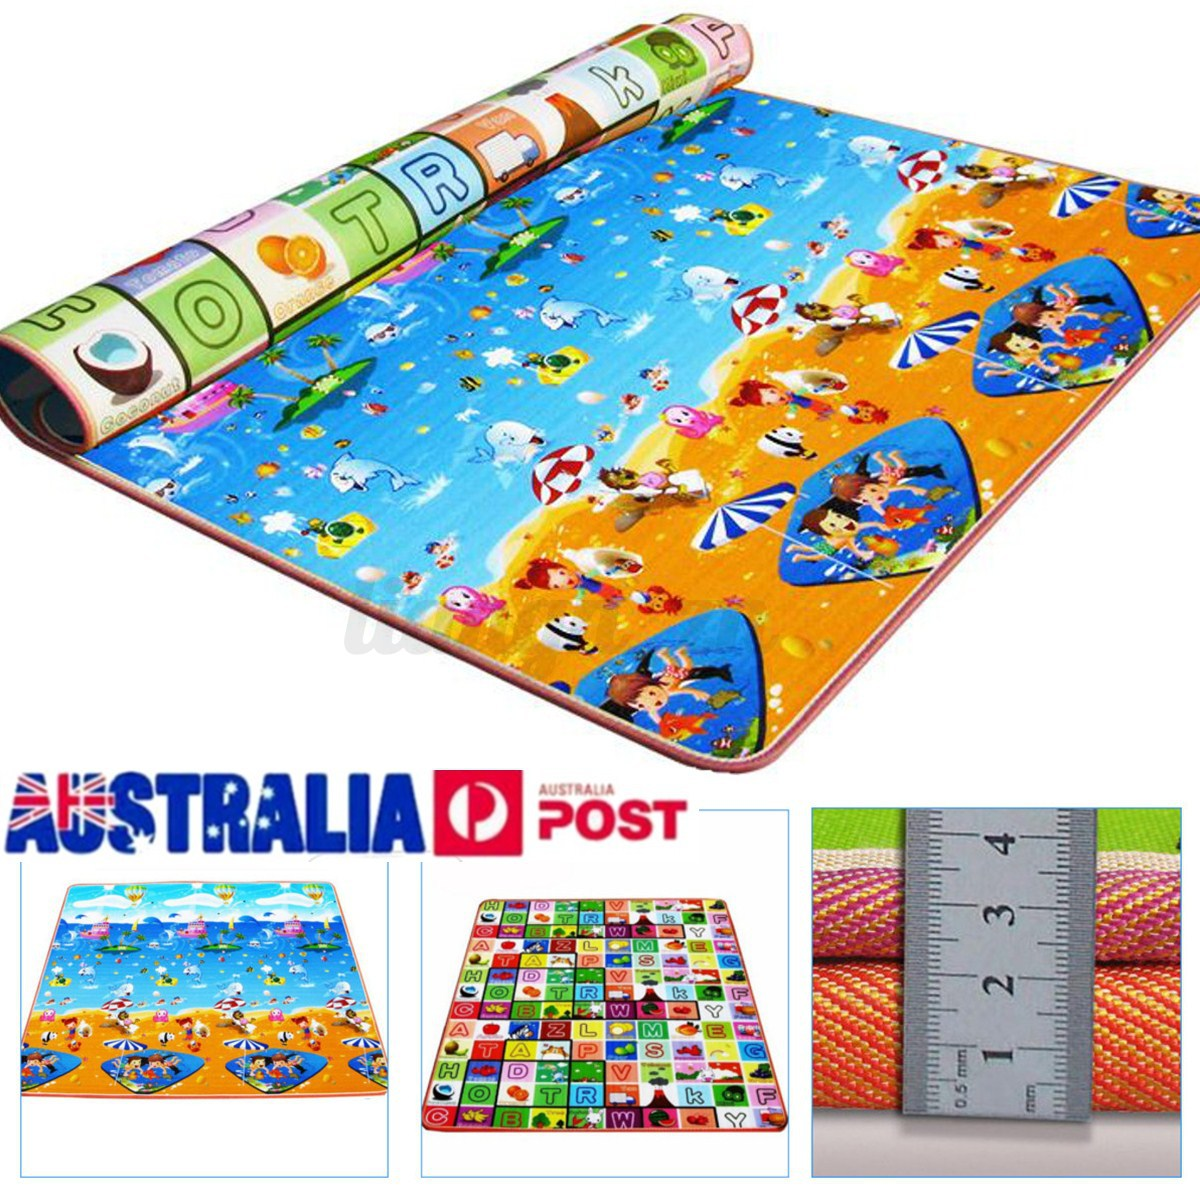 Mother & Kids Activity & Gear Baby Play Mat 0-12 Months Baby Soft Gym Blanket Crawling Toy Kids Rug Floor Mat Boy Girl Carpet Game Mat For Children Education Excellent Quality